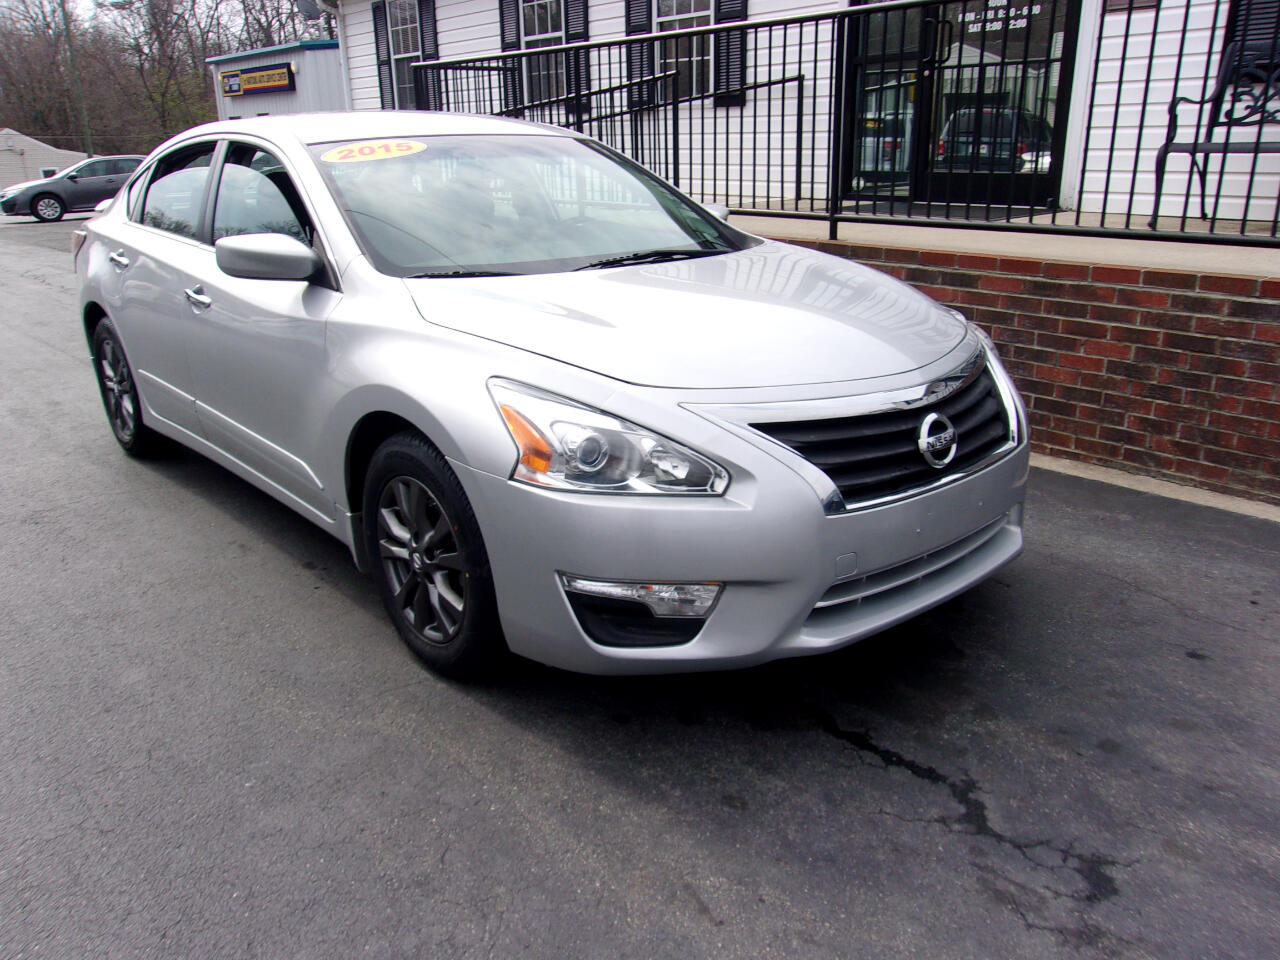 Nissan Altima 4dr Sdn I4 2.5 S 2015